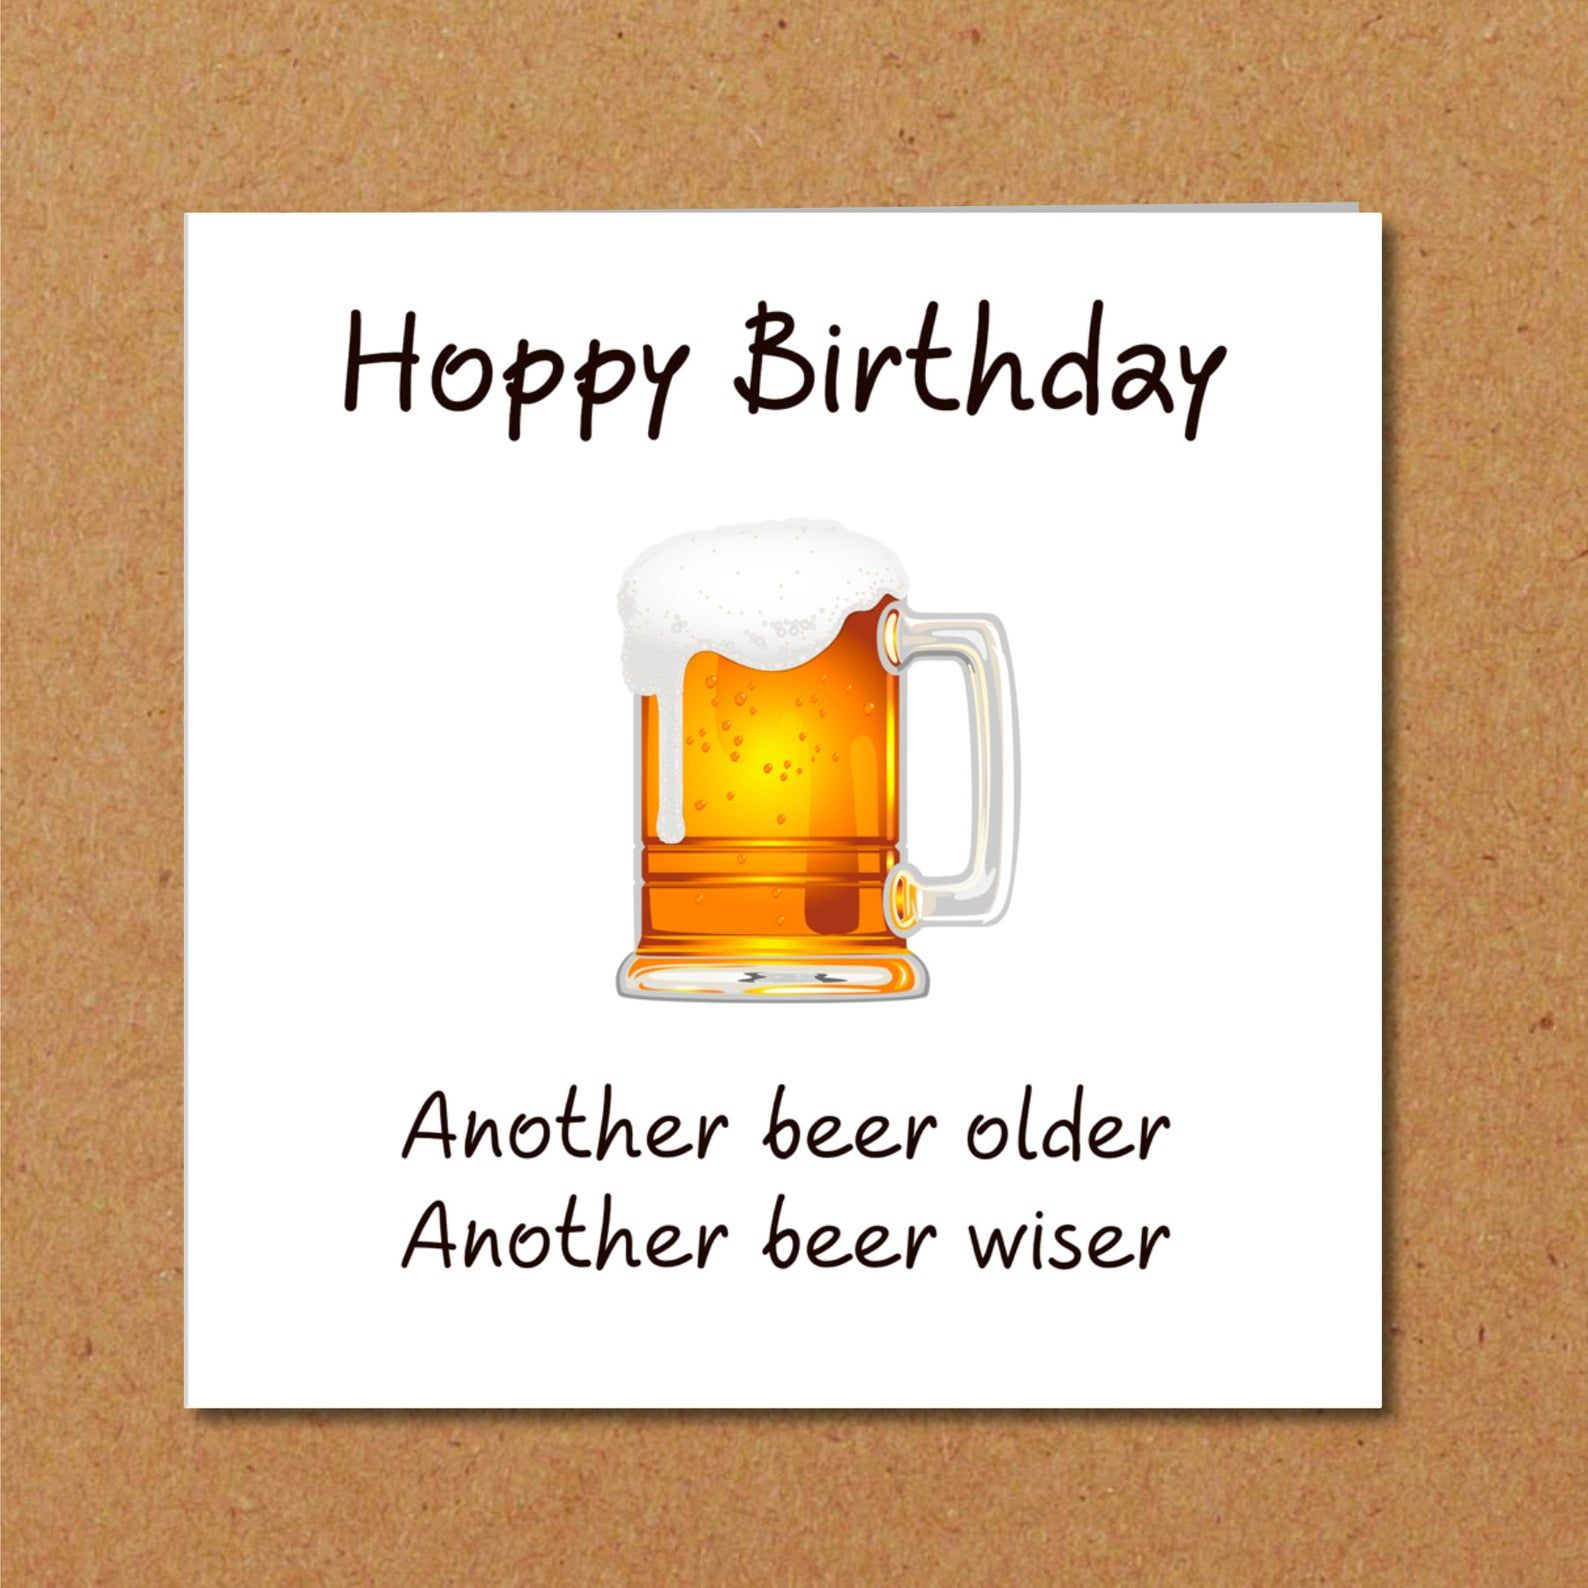 Funny Beer Birthday Card For Dad Son Male Friend Humorous Etsy Funny Beer Birthday Cards Birthday Cards For Son Beer Birthday Cards